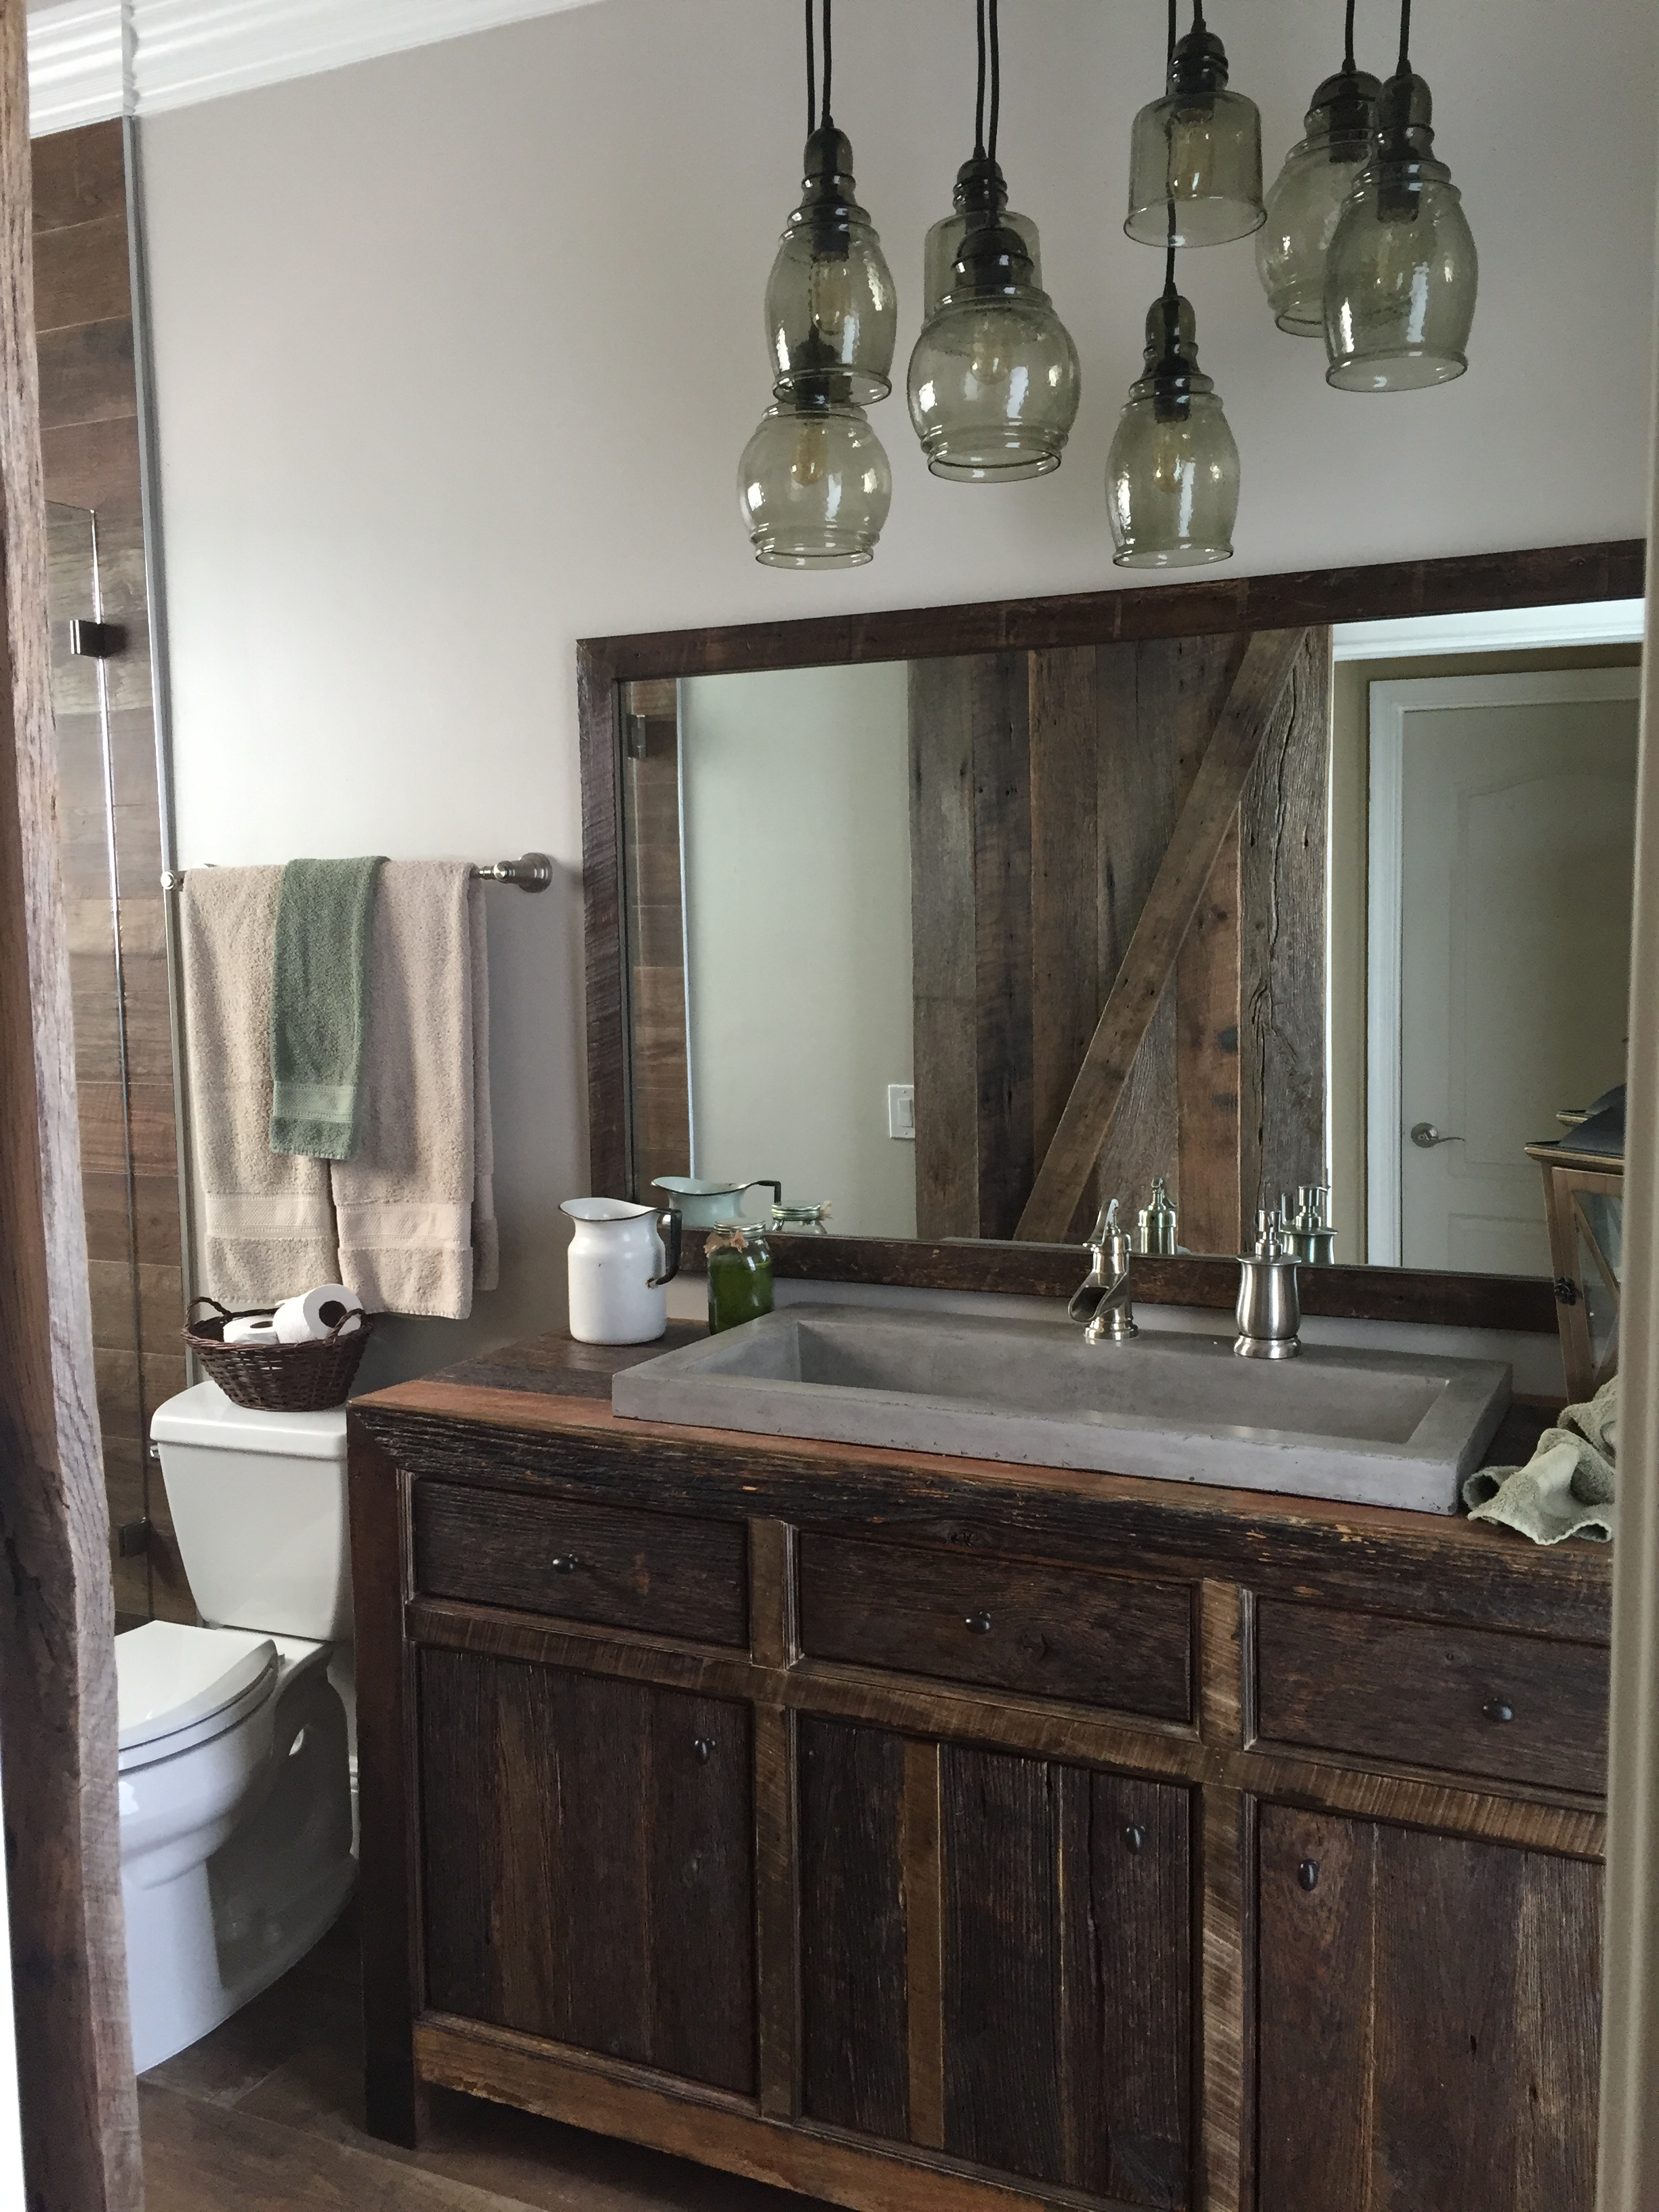 Rustic Bathroom Vanity Robbie's Rustic Reclaimed Wood Bathroom Vanity | Fama